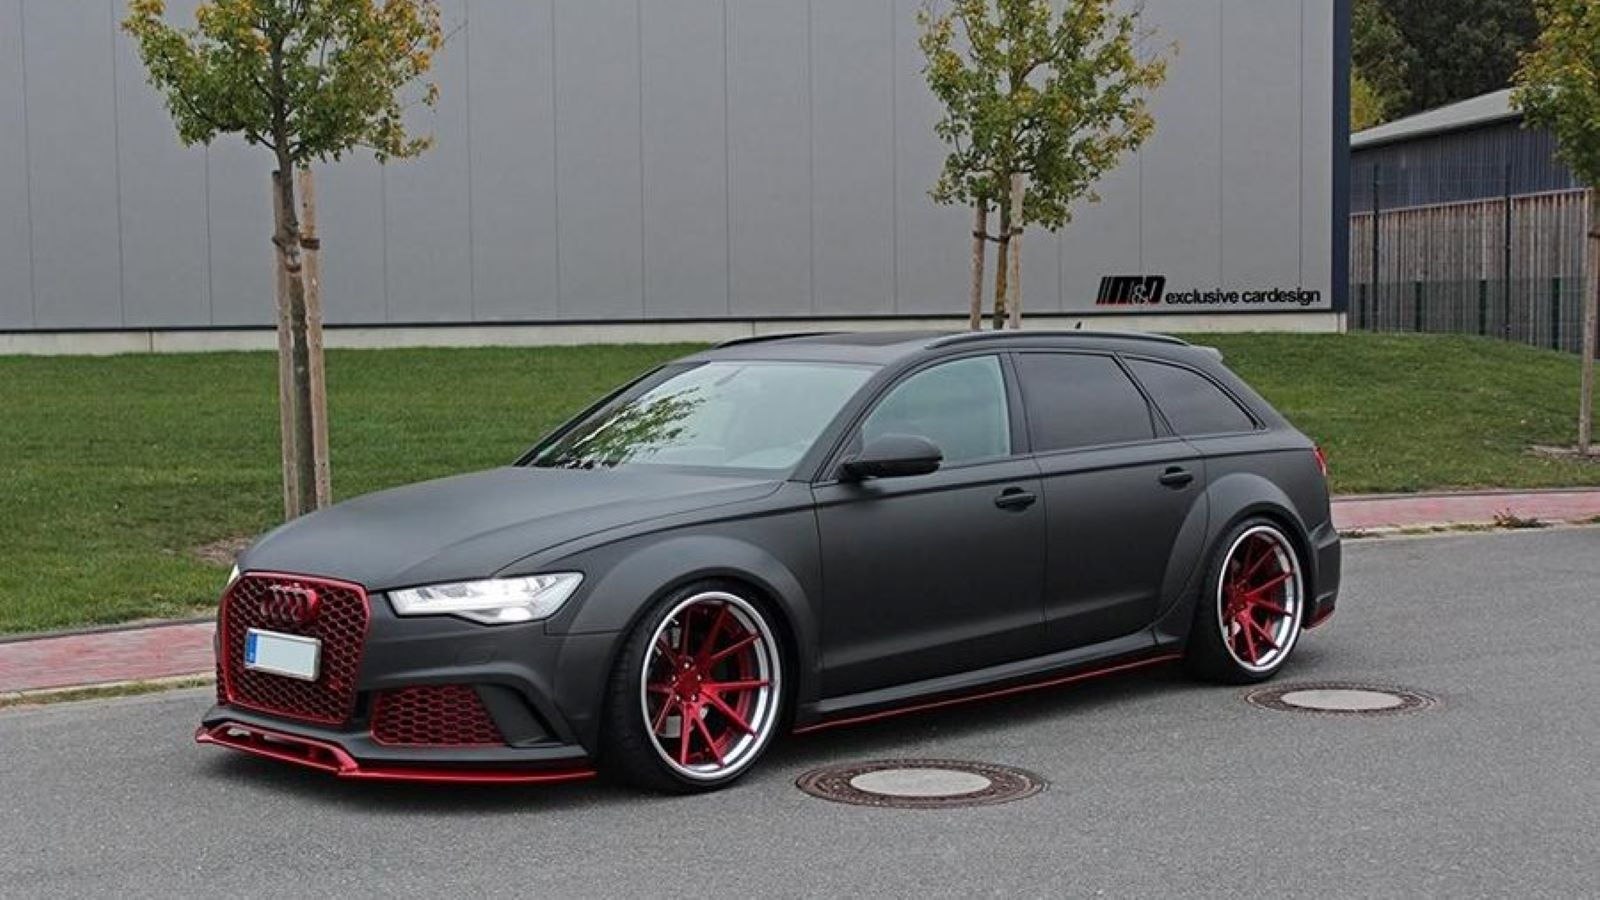 hight resolution of a6 avant gets bodykit and wheels from m d exclusive cardesign